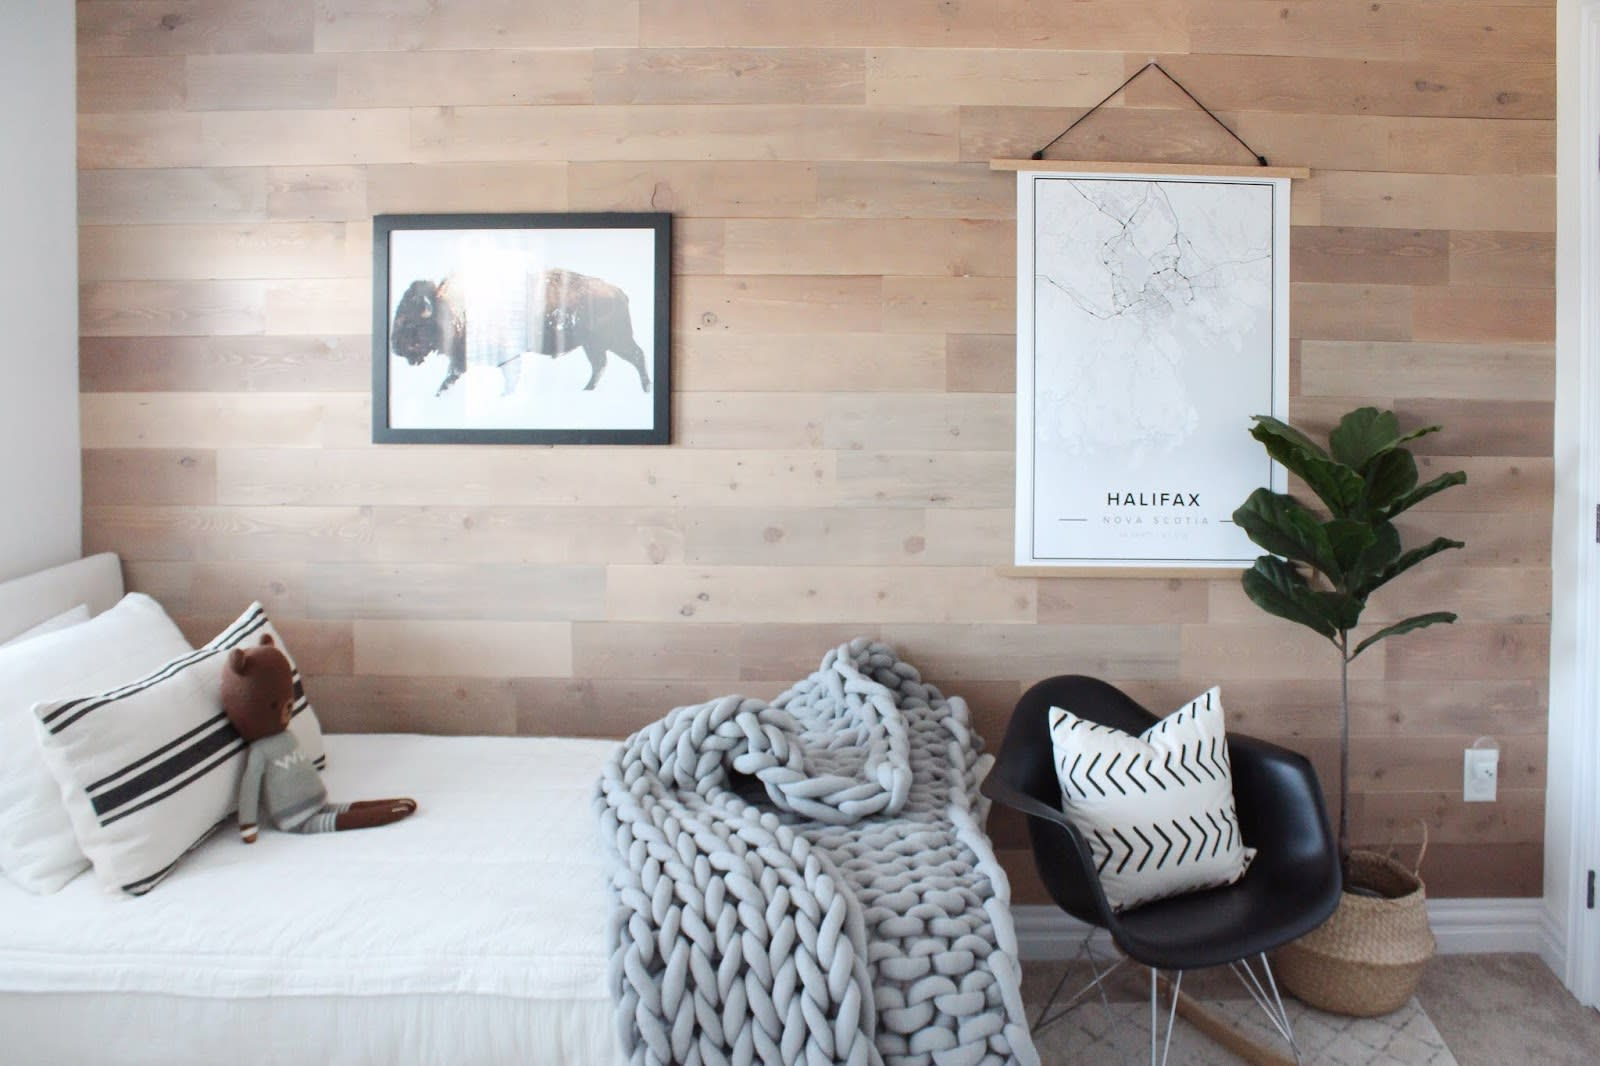 Real wood feature wall made from sand stone finish peel and stick wood planks behind a child's bed.